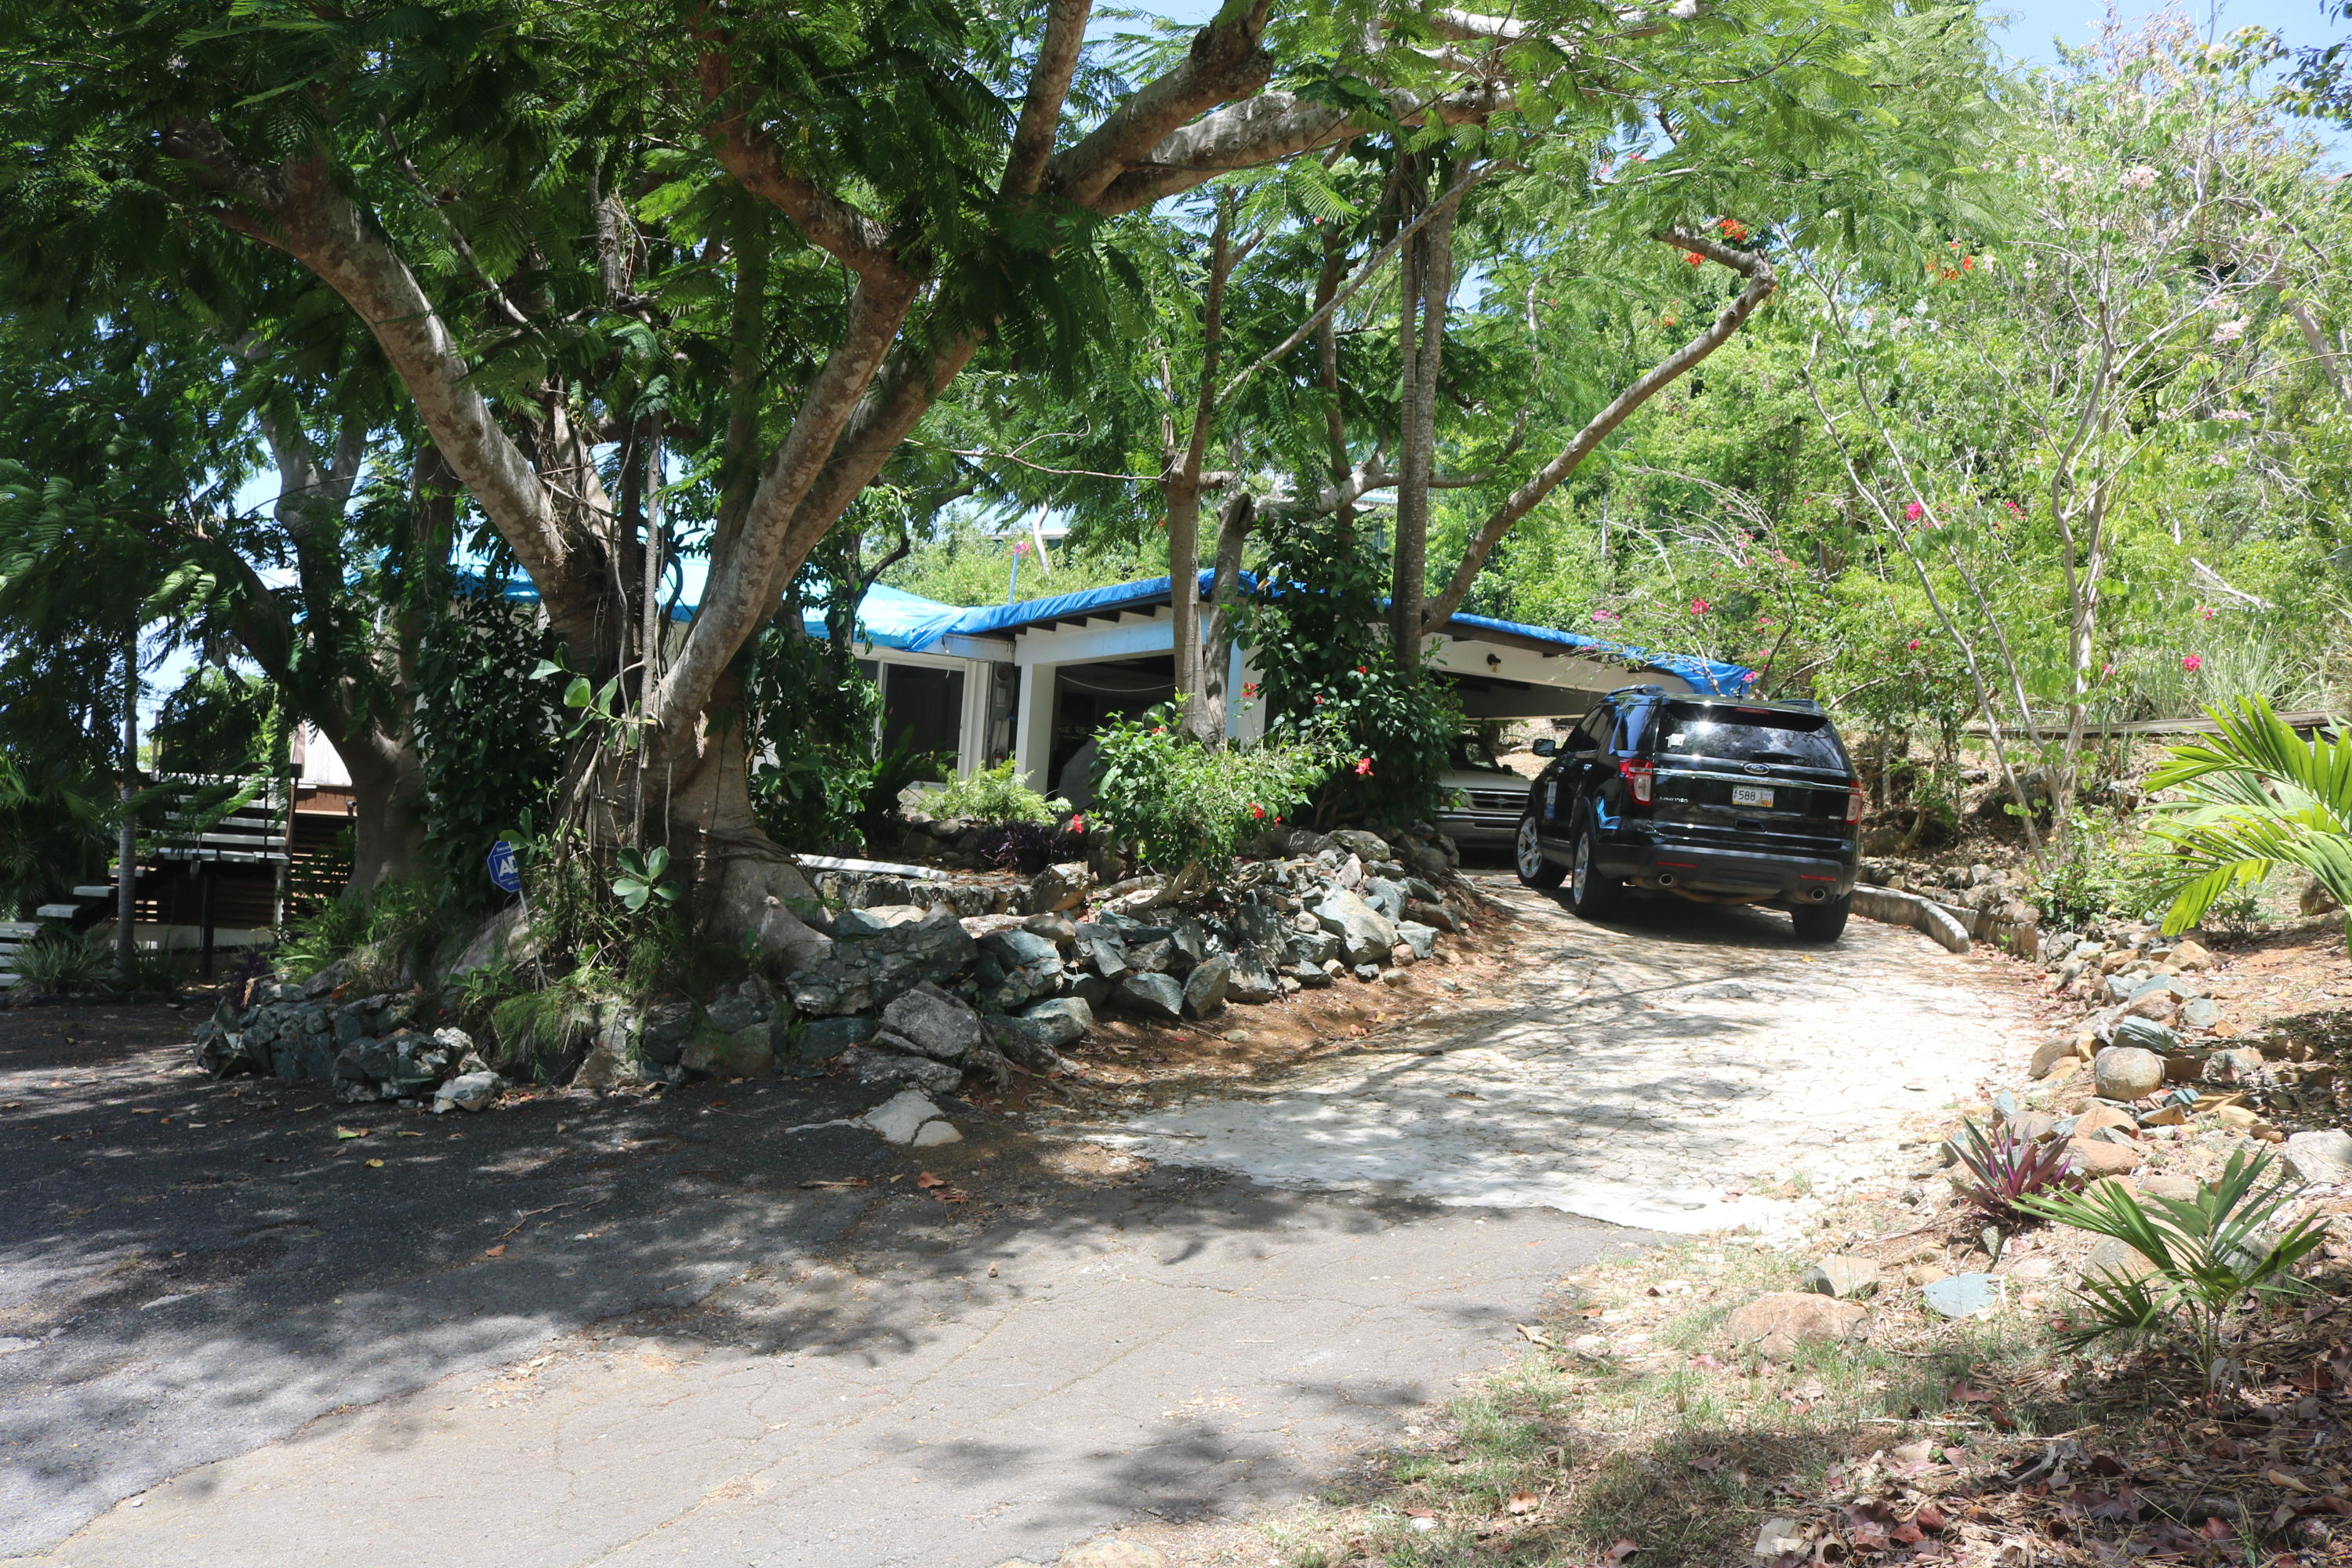 Carport and Lower Parking